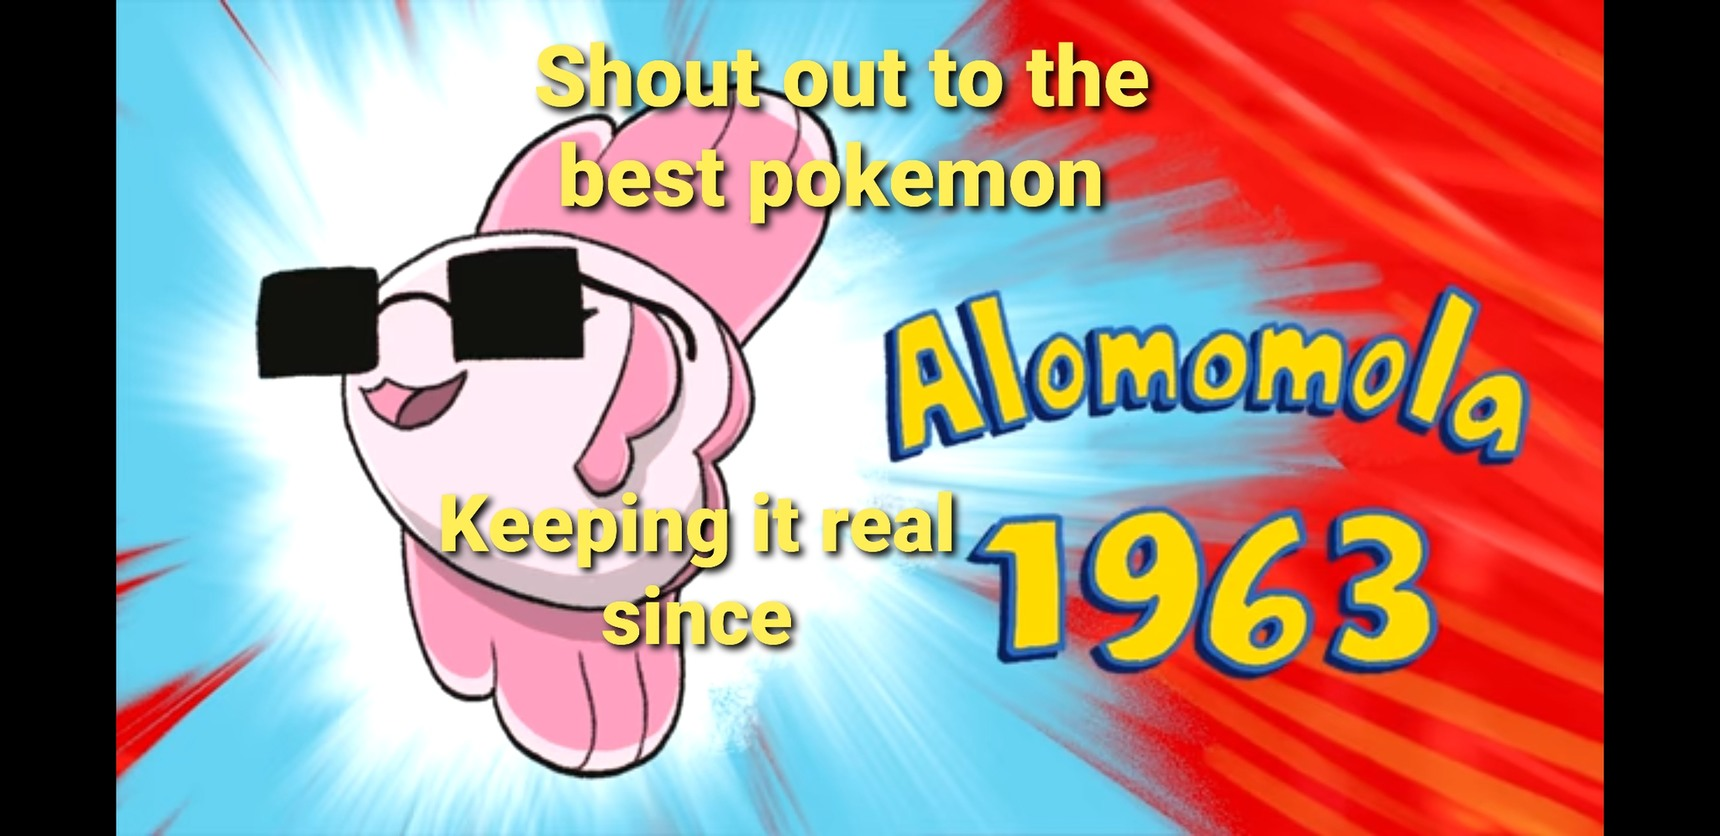 The Best pokemon according to Jelly Apolocypse - meme